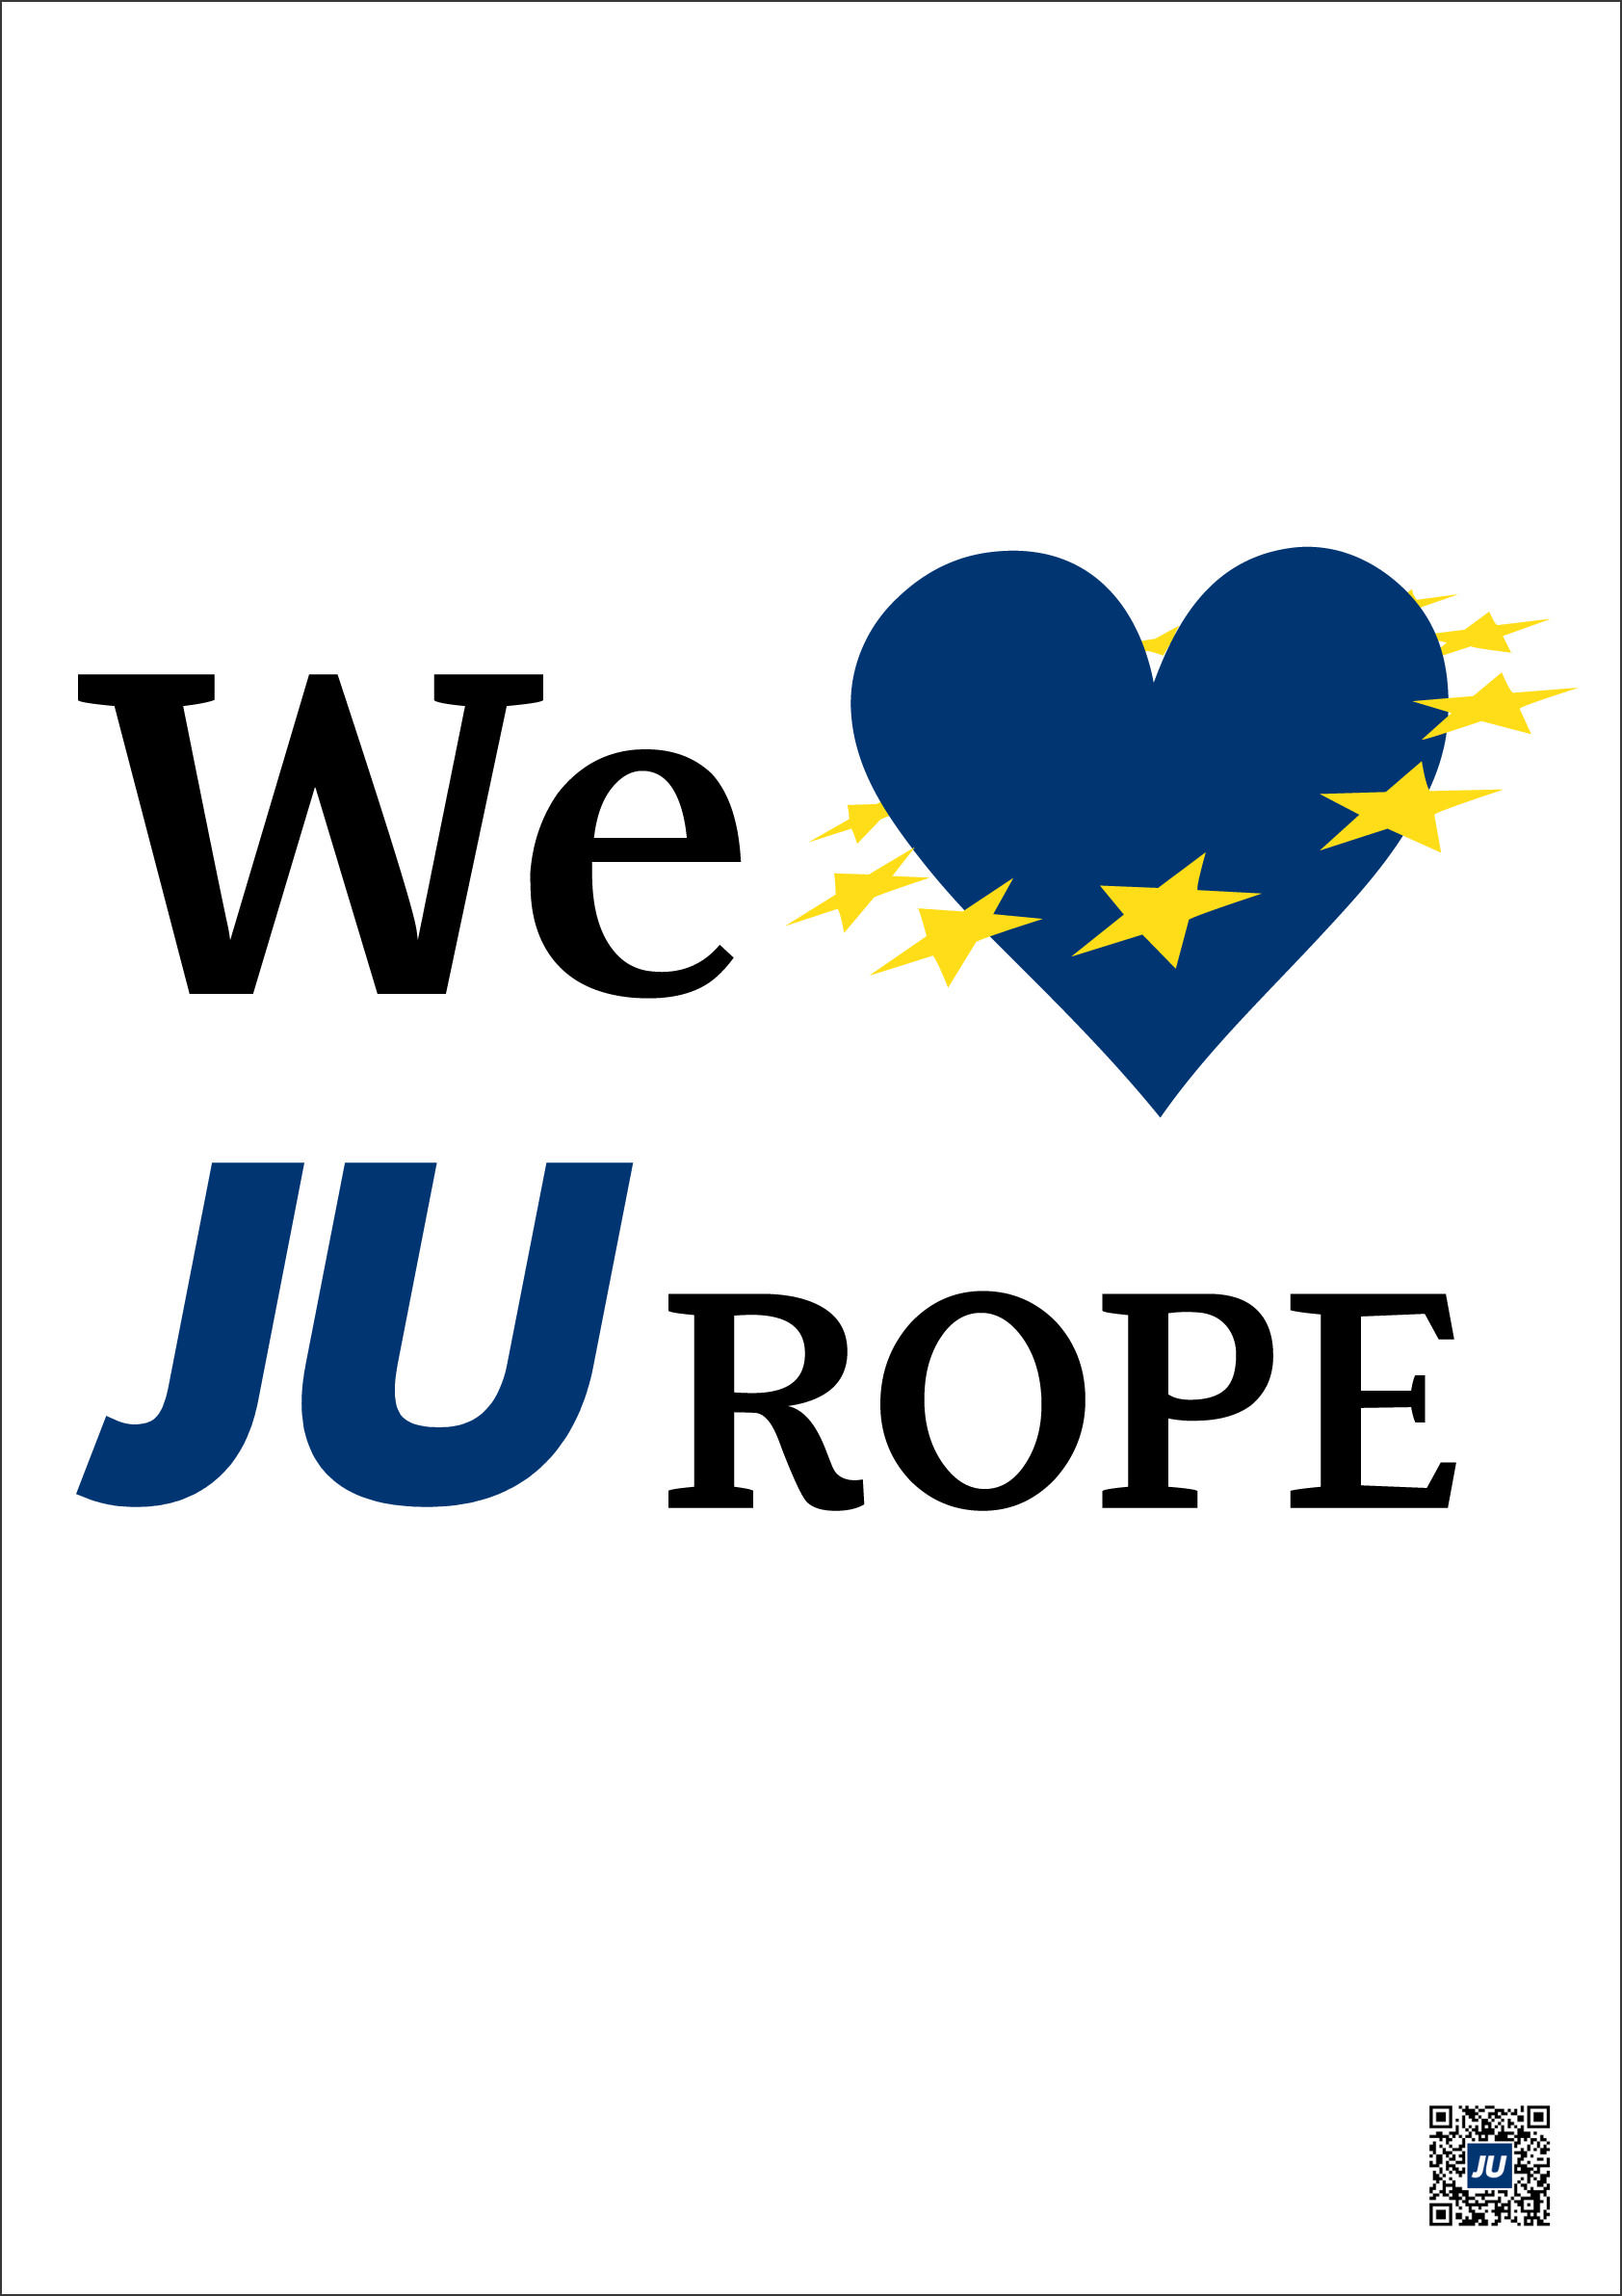 We love JUROPE